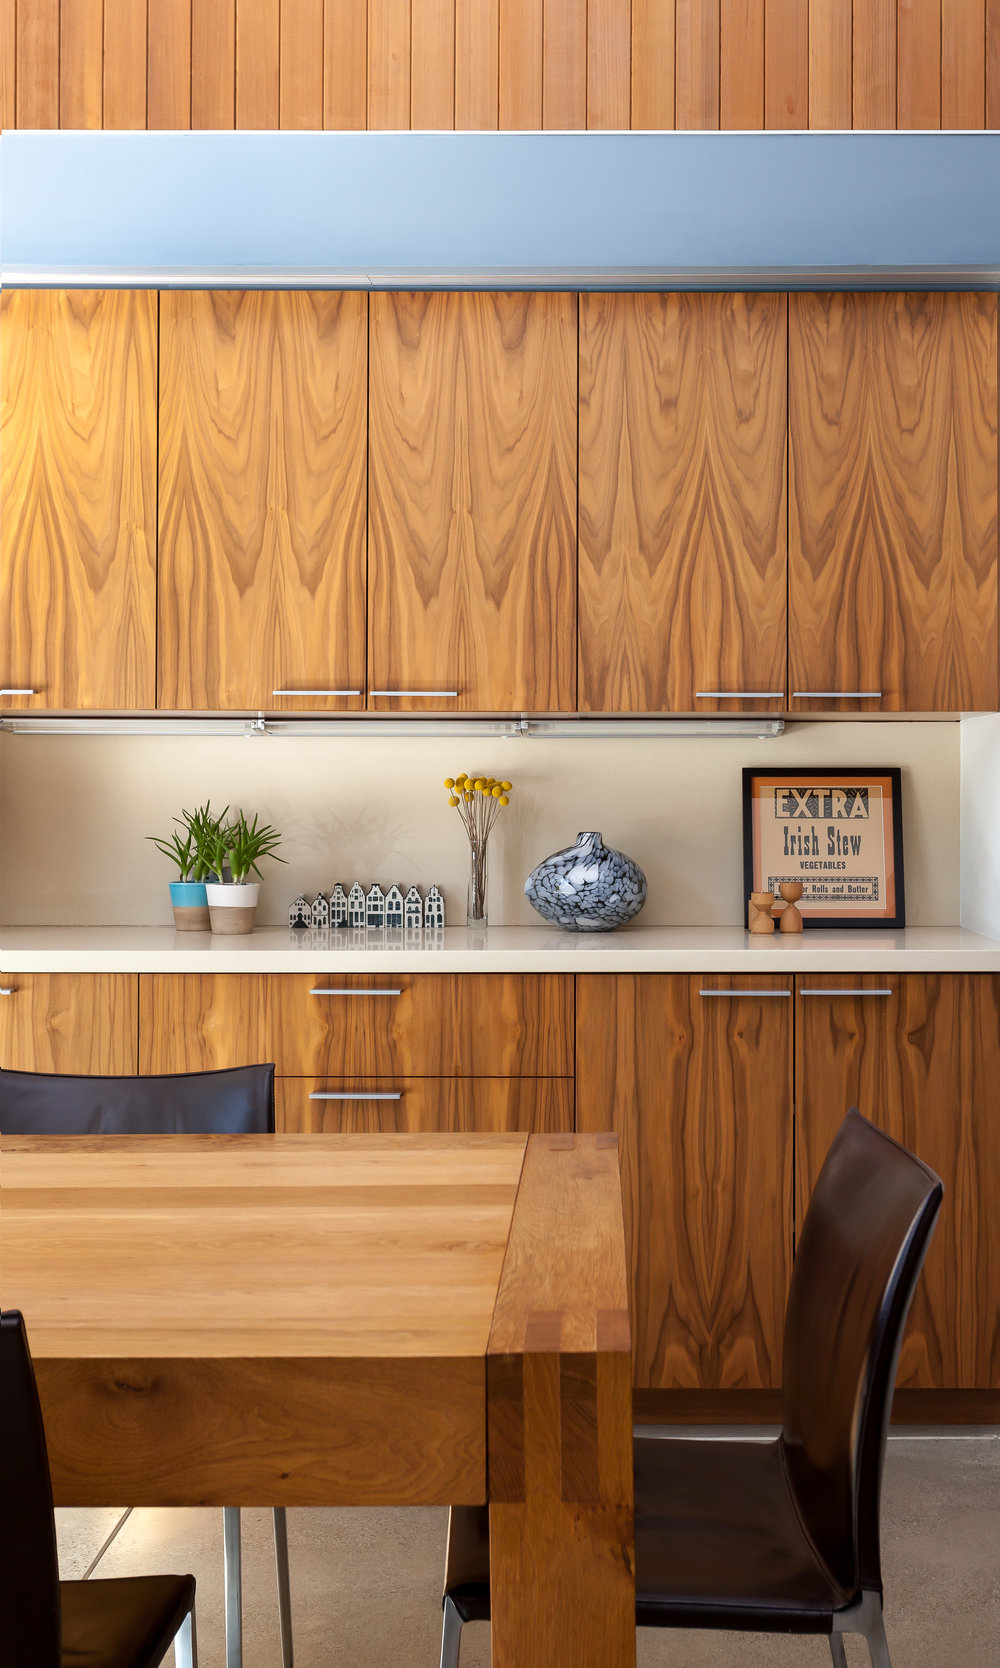 Detail of the walnut cabinetry at the dining room.